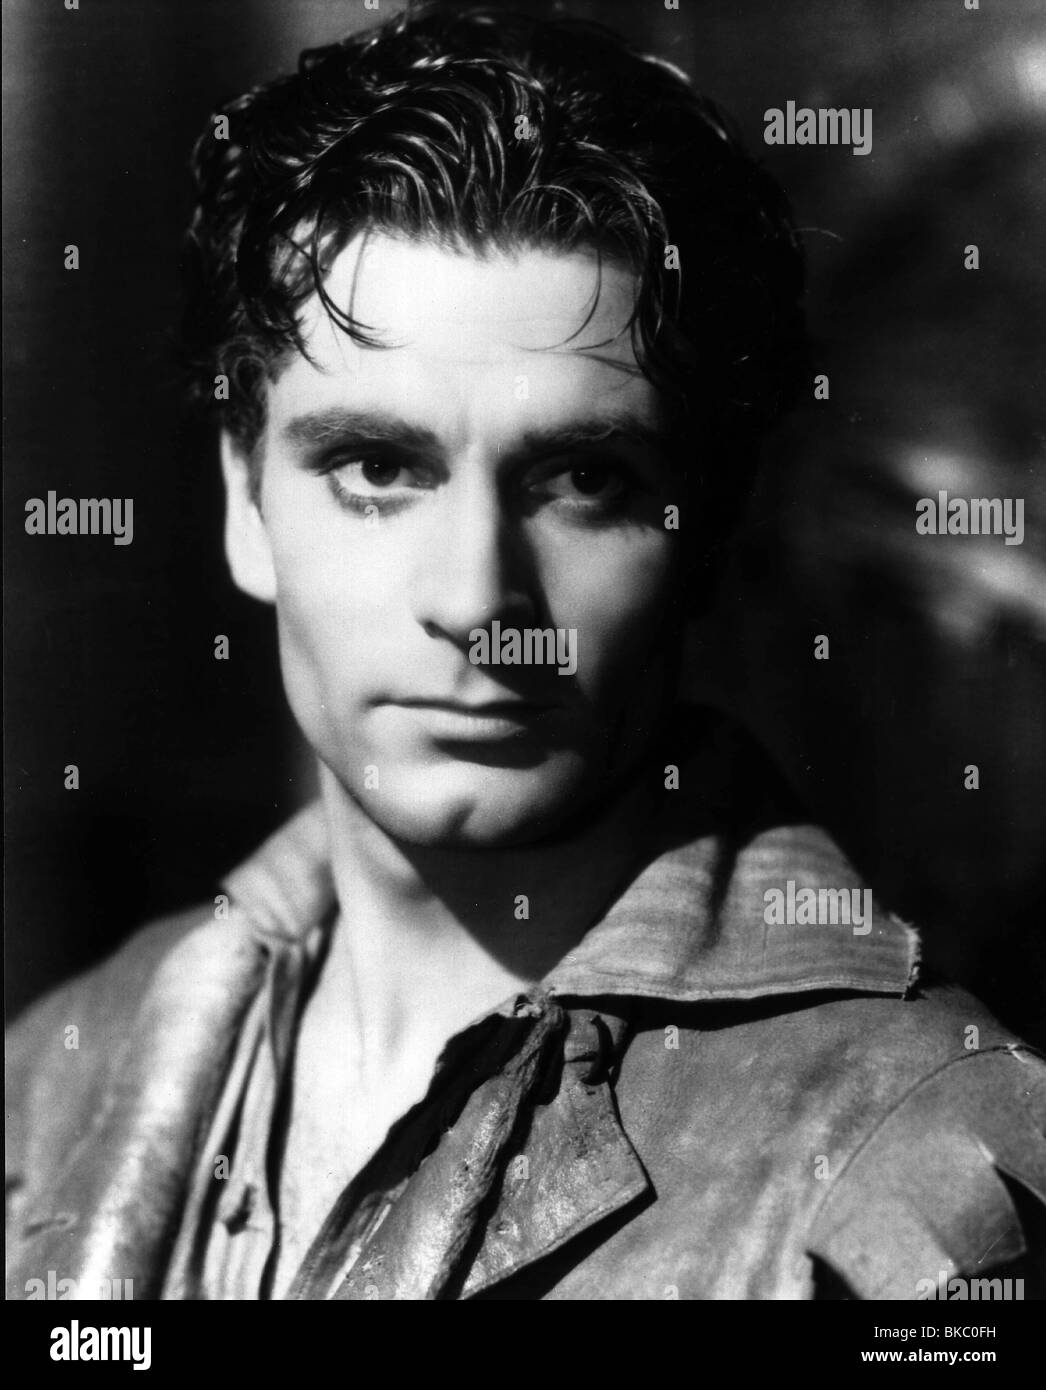 wuthering heights stock photos wuthering heights stock images wuthering heights 1939 laurence olivier wth1 028p stock image